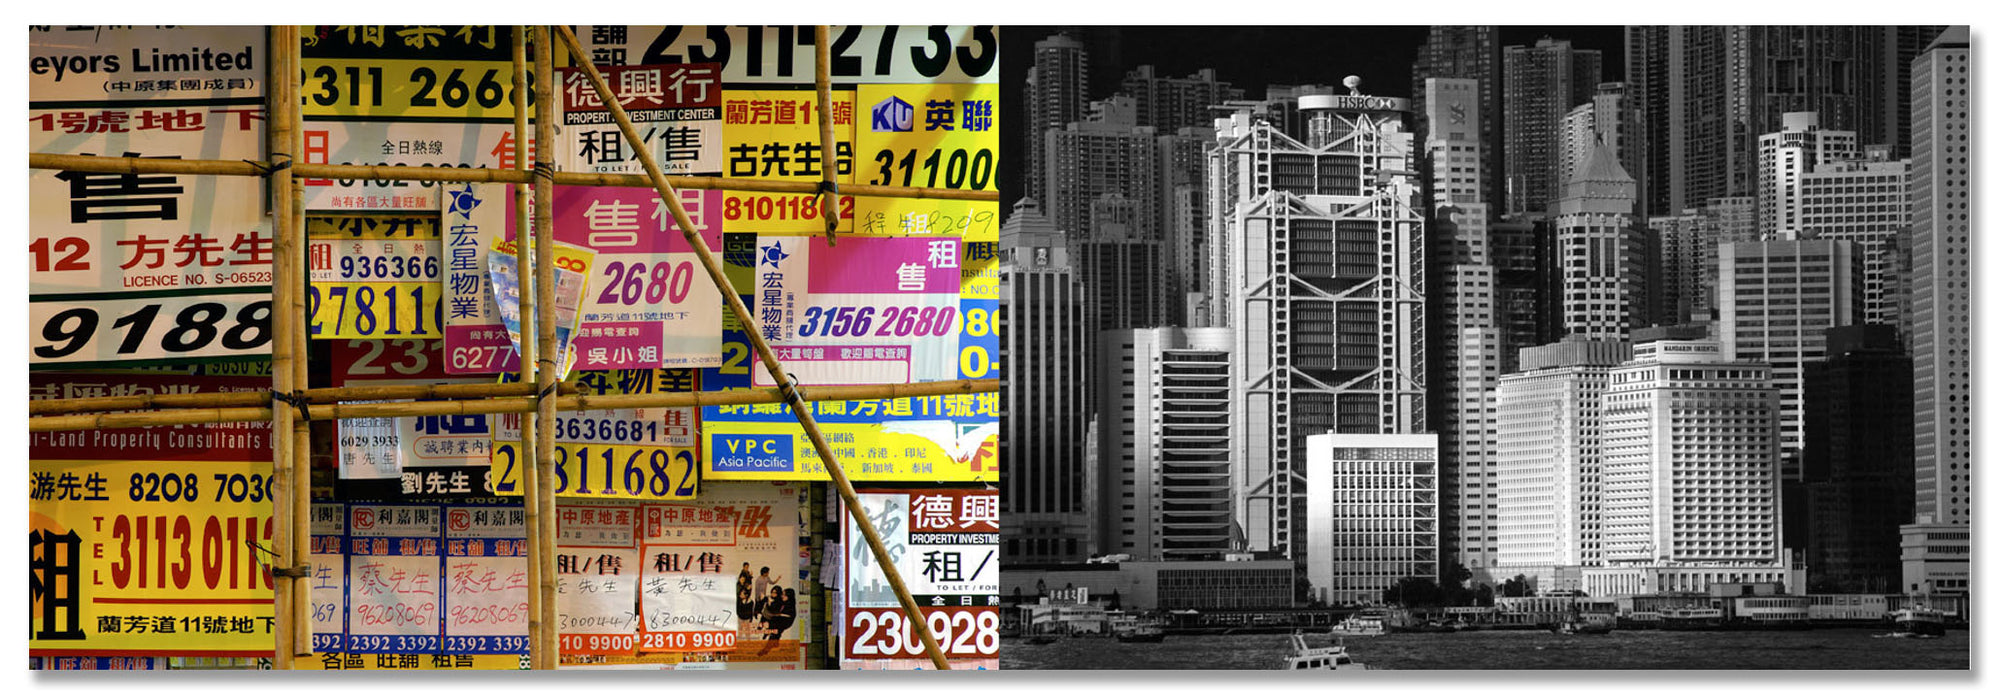 Rent. Property. Diptych